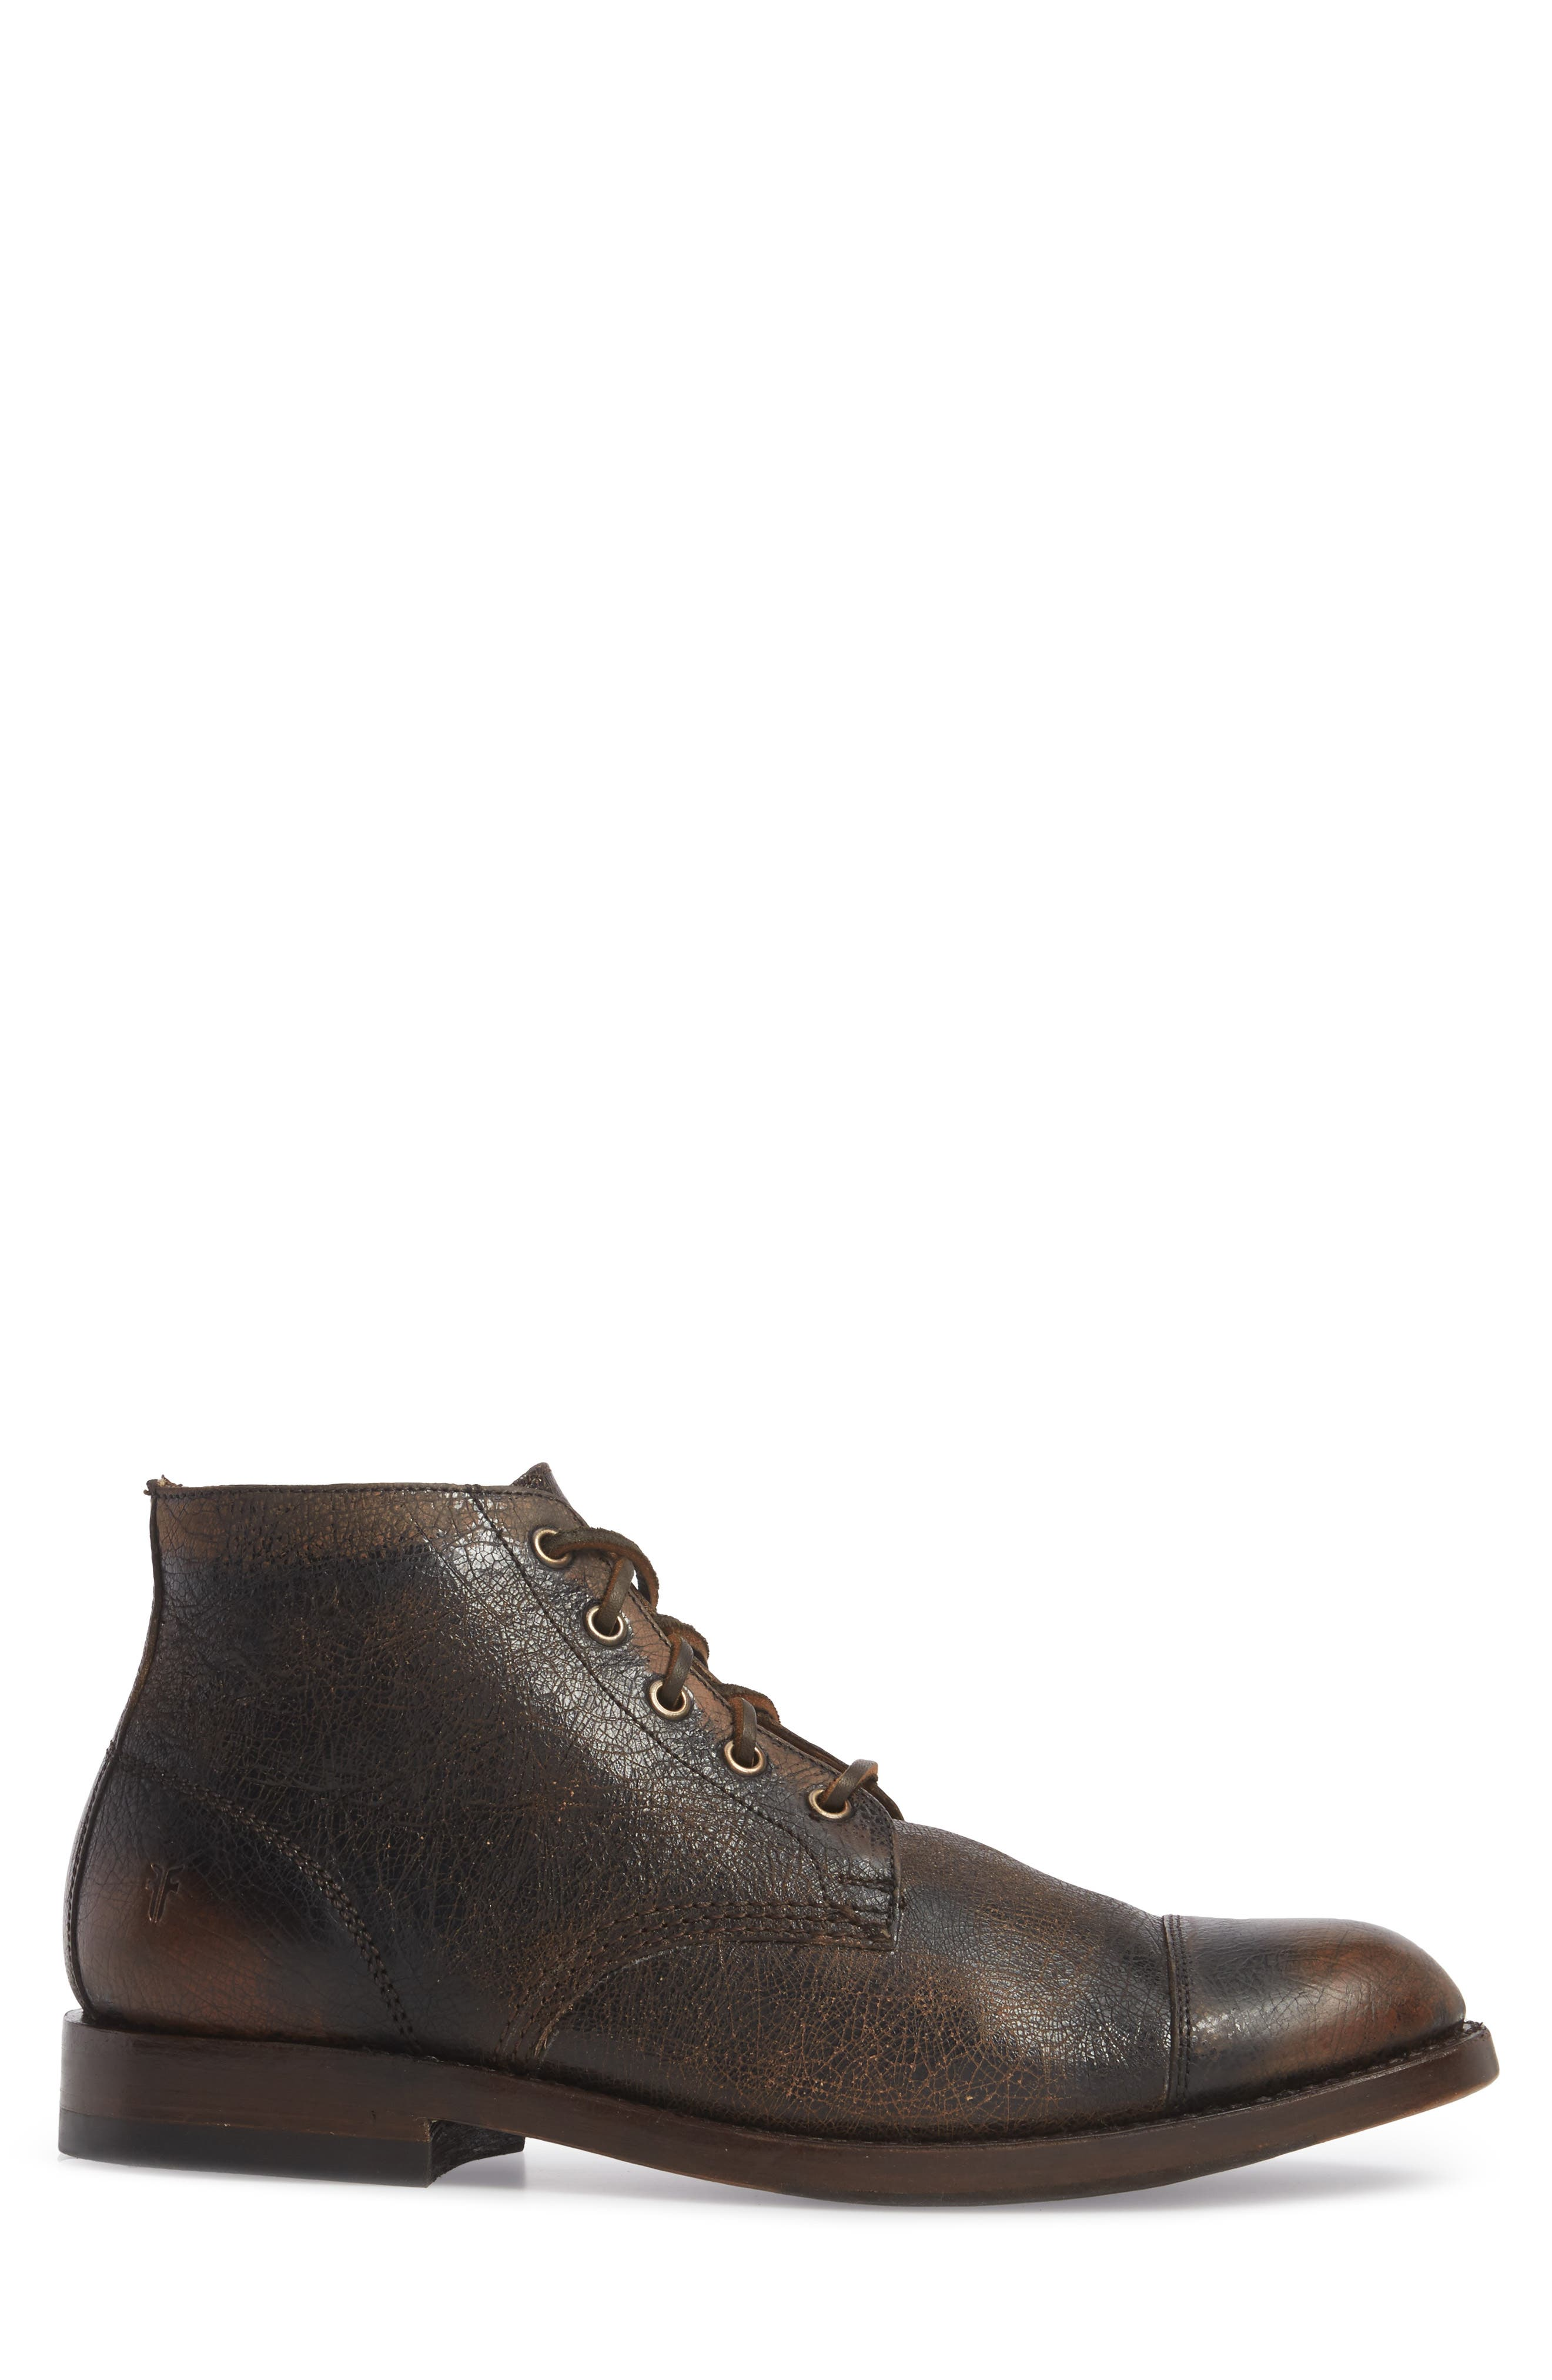 Will Chukka Boot,                             Alternate thumbnail 3, color,                             DARK BROWN LEATHER